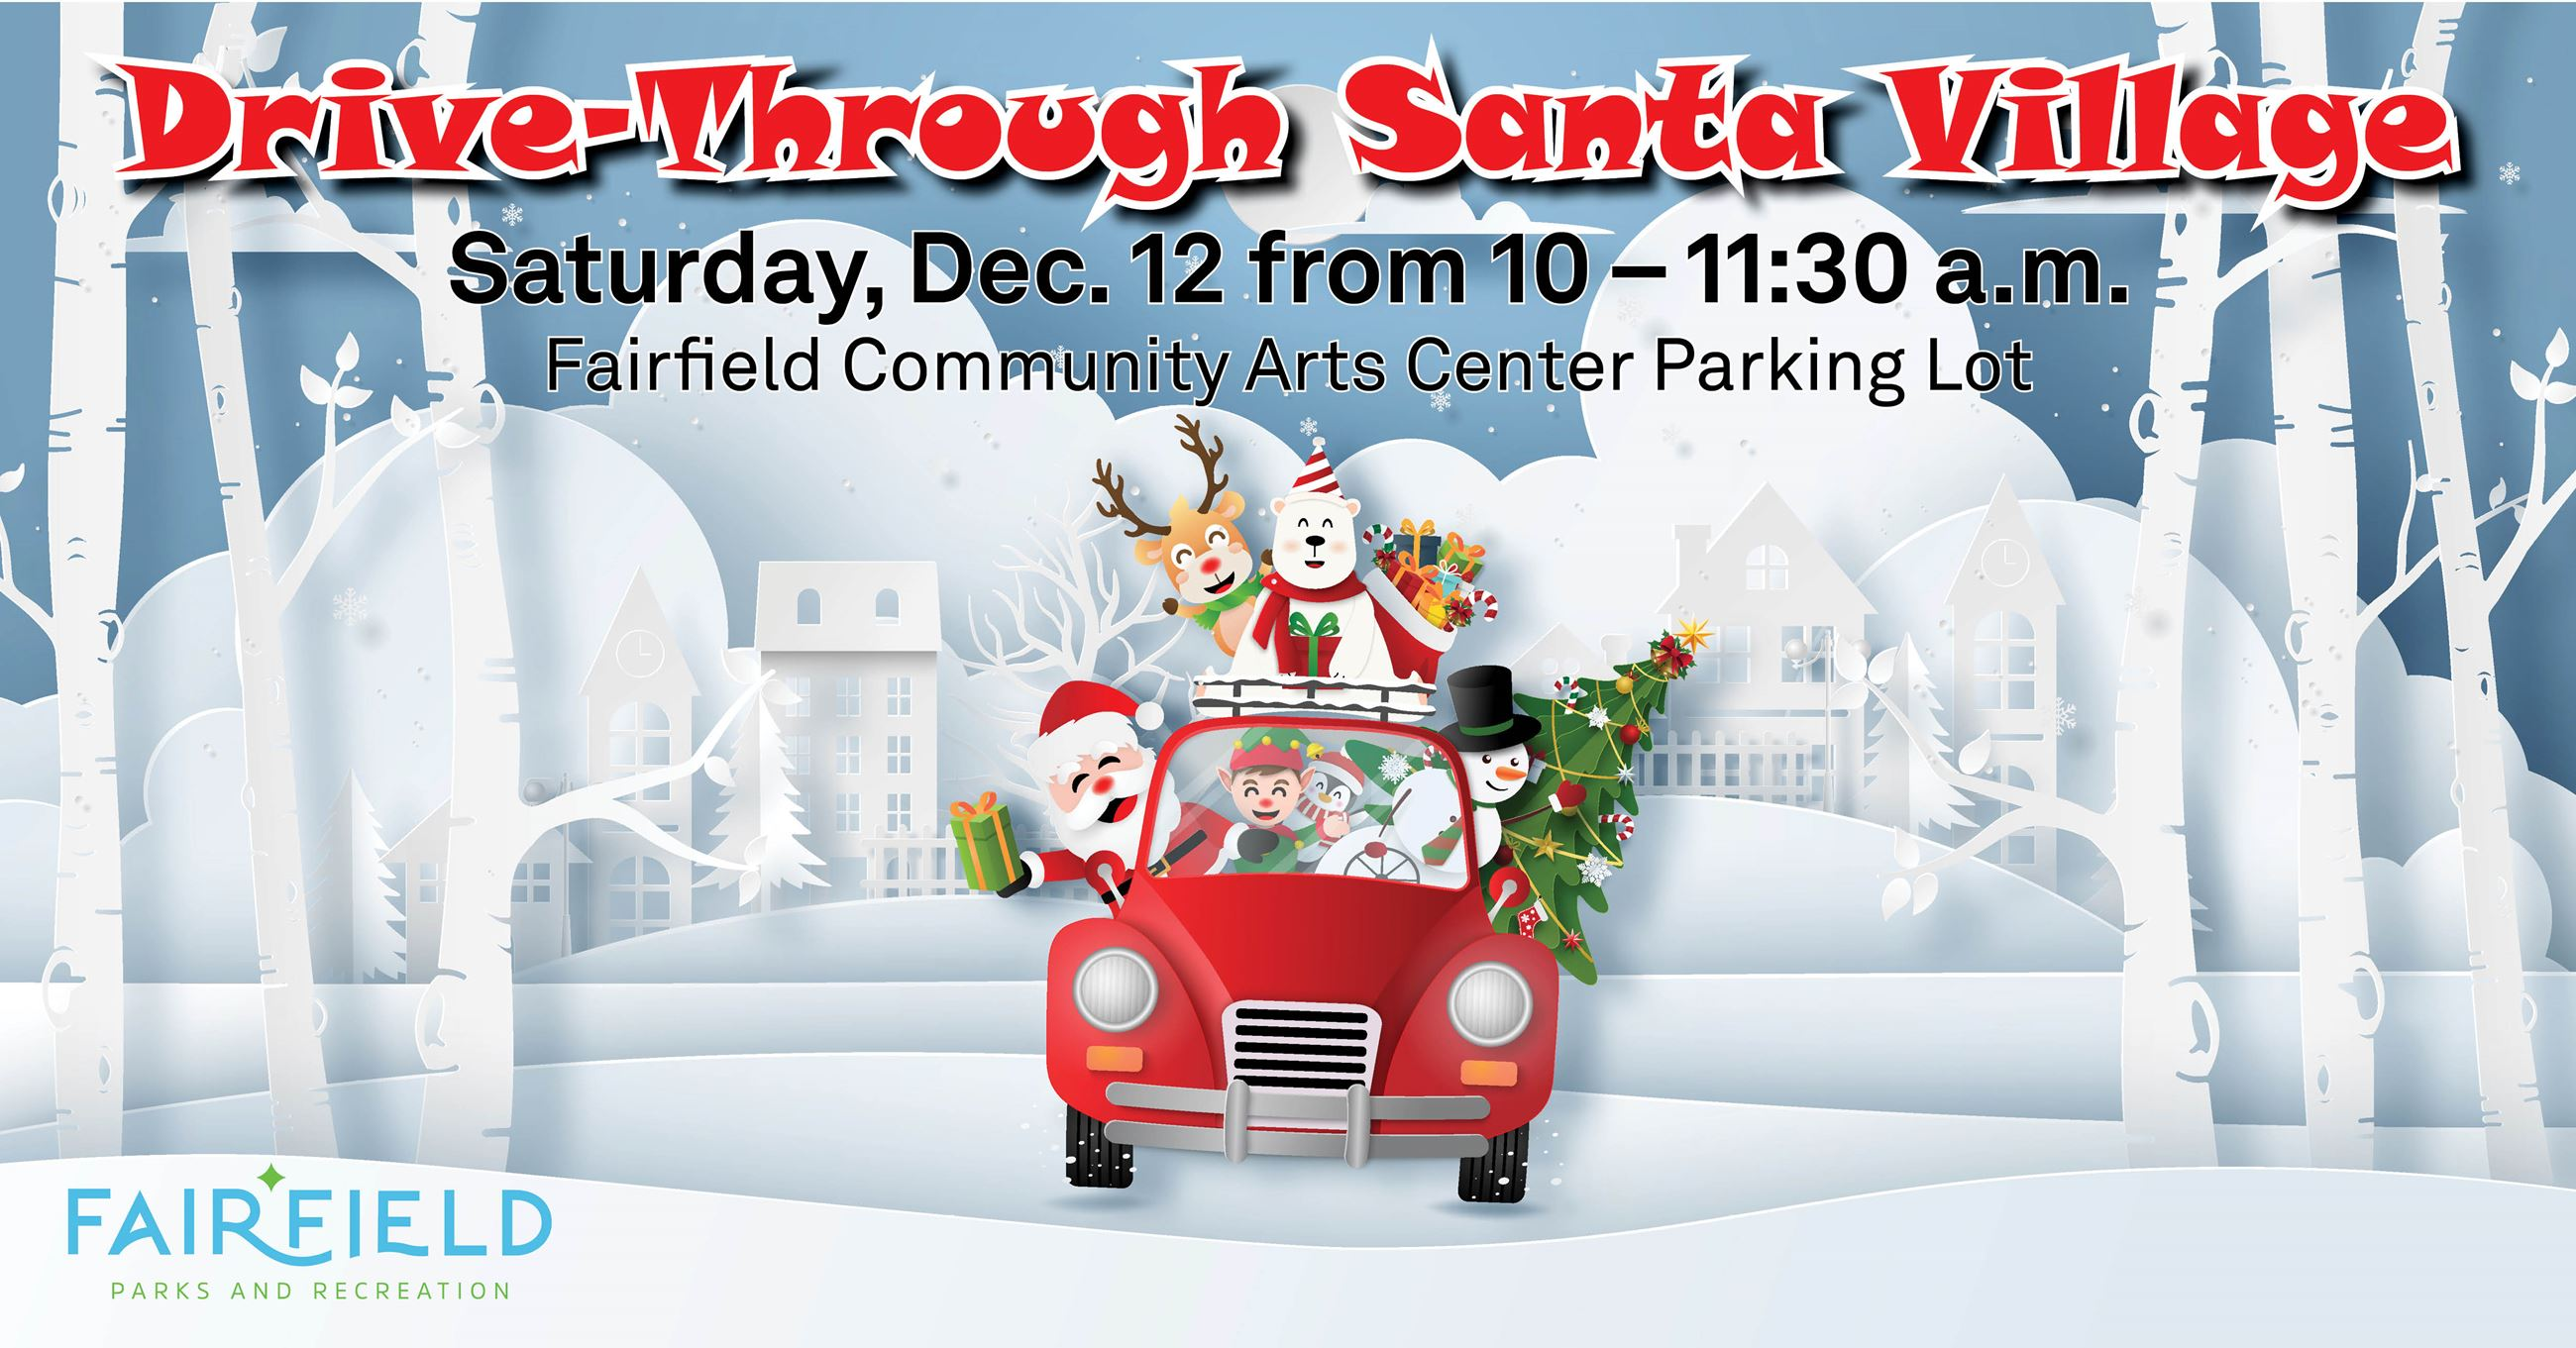 fb cover drive thru santa village v2